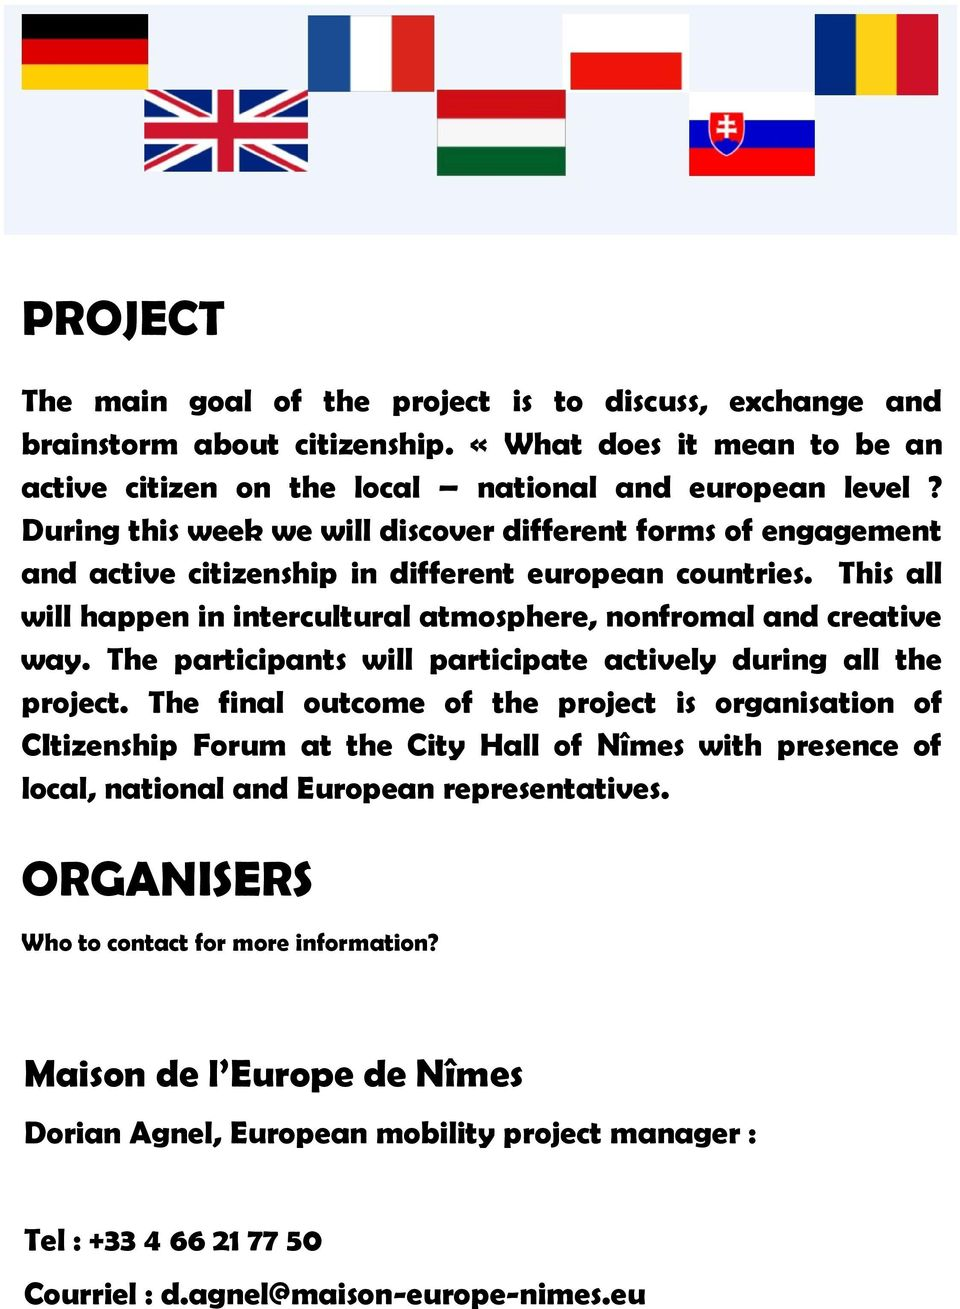 The participants will participate actively during all the project.